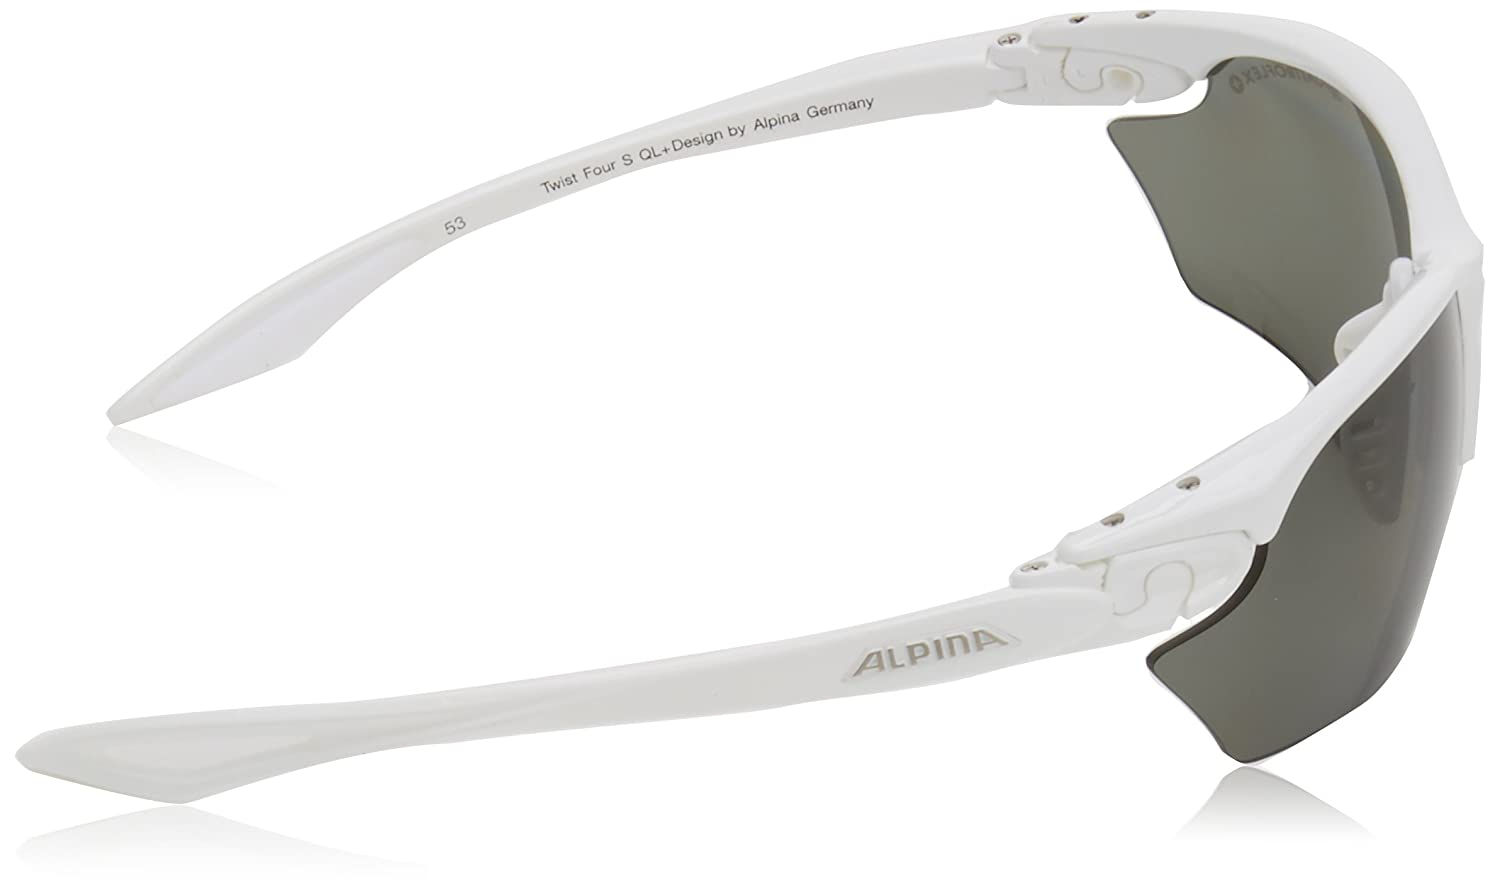 ALPINA Gafas de Sol Deportivas Twist Four S QL + - Colour ...